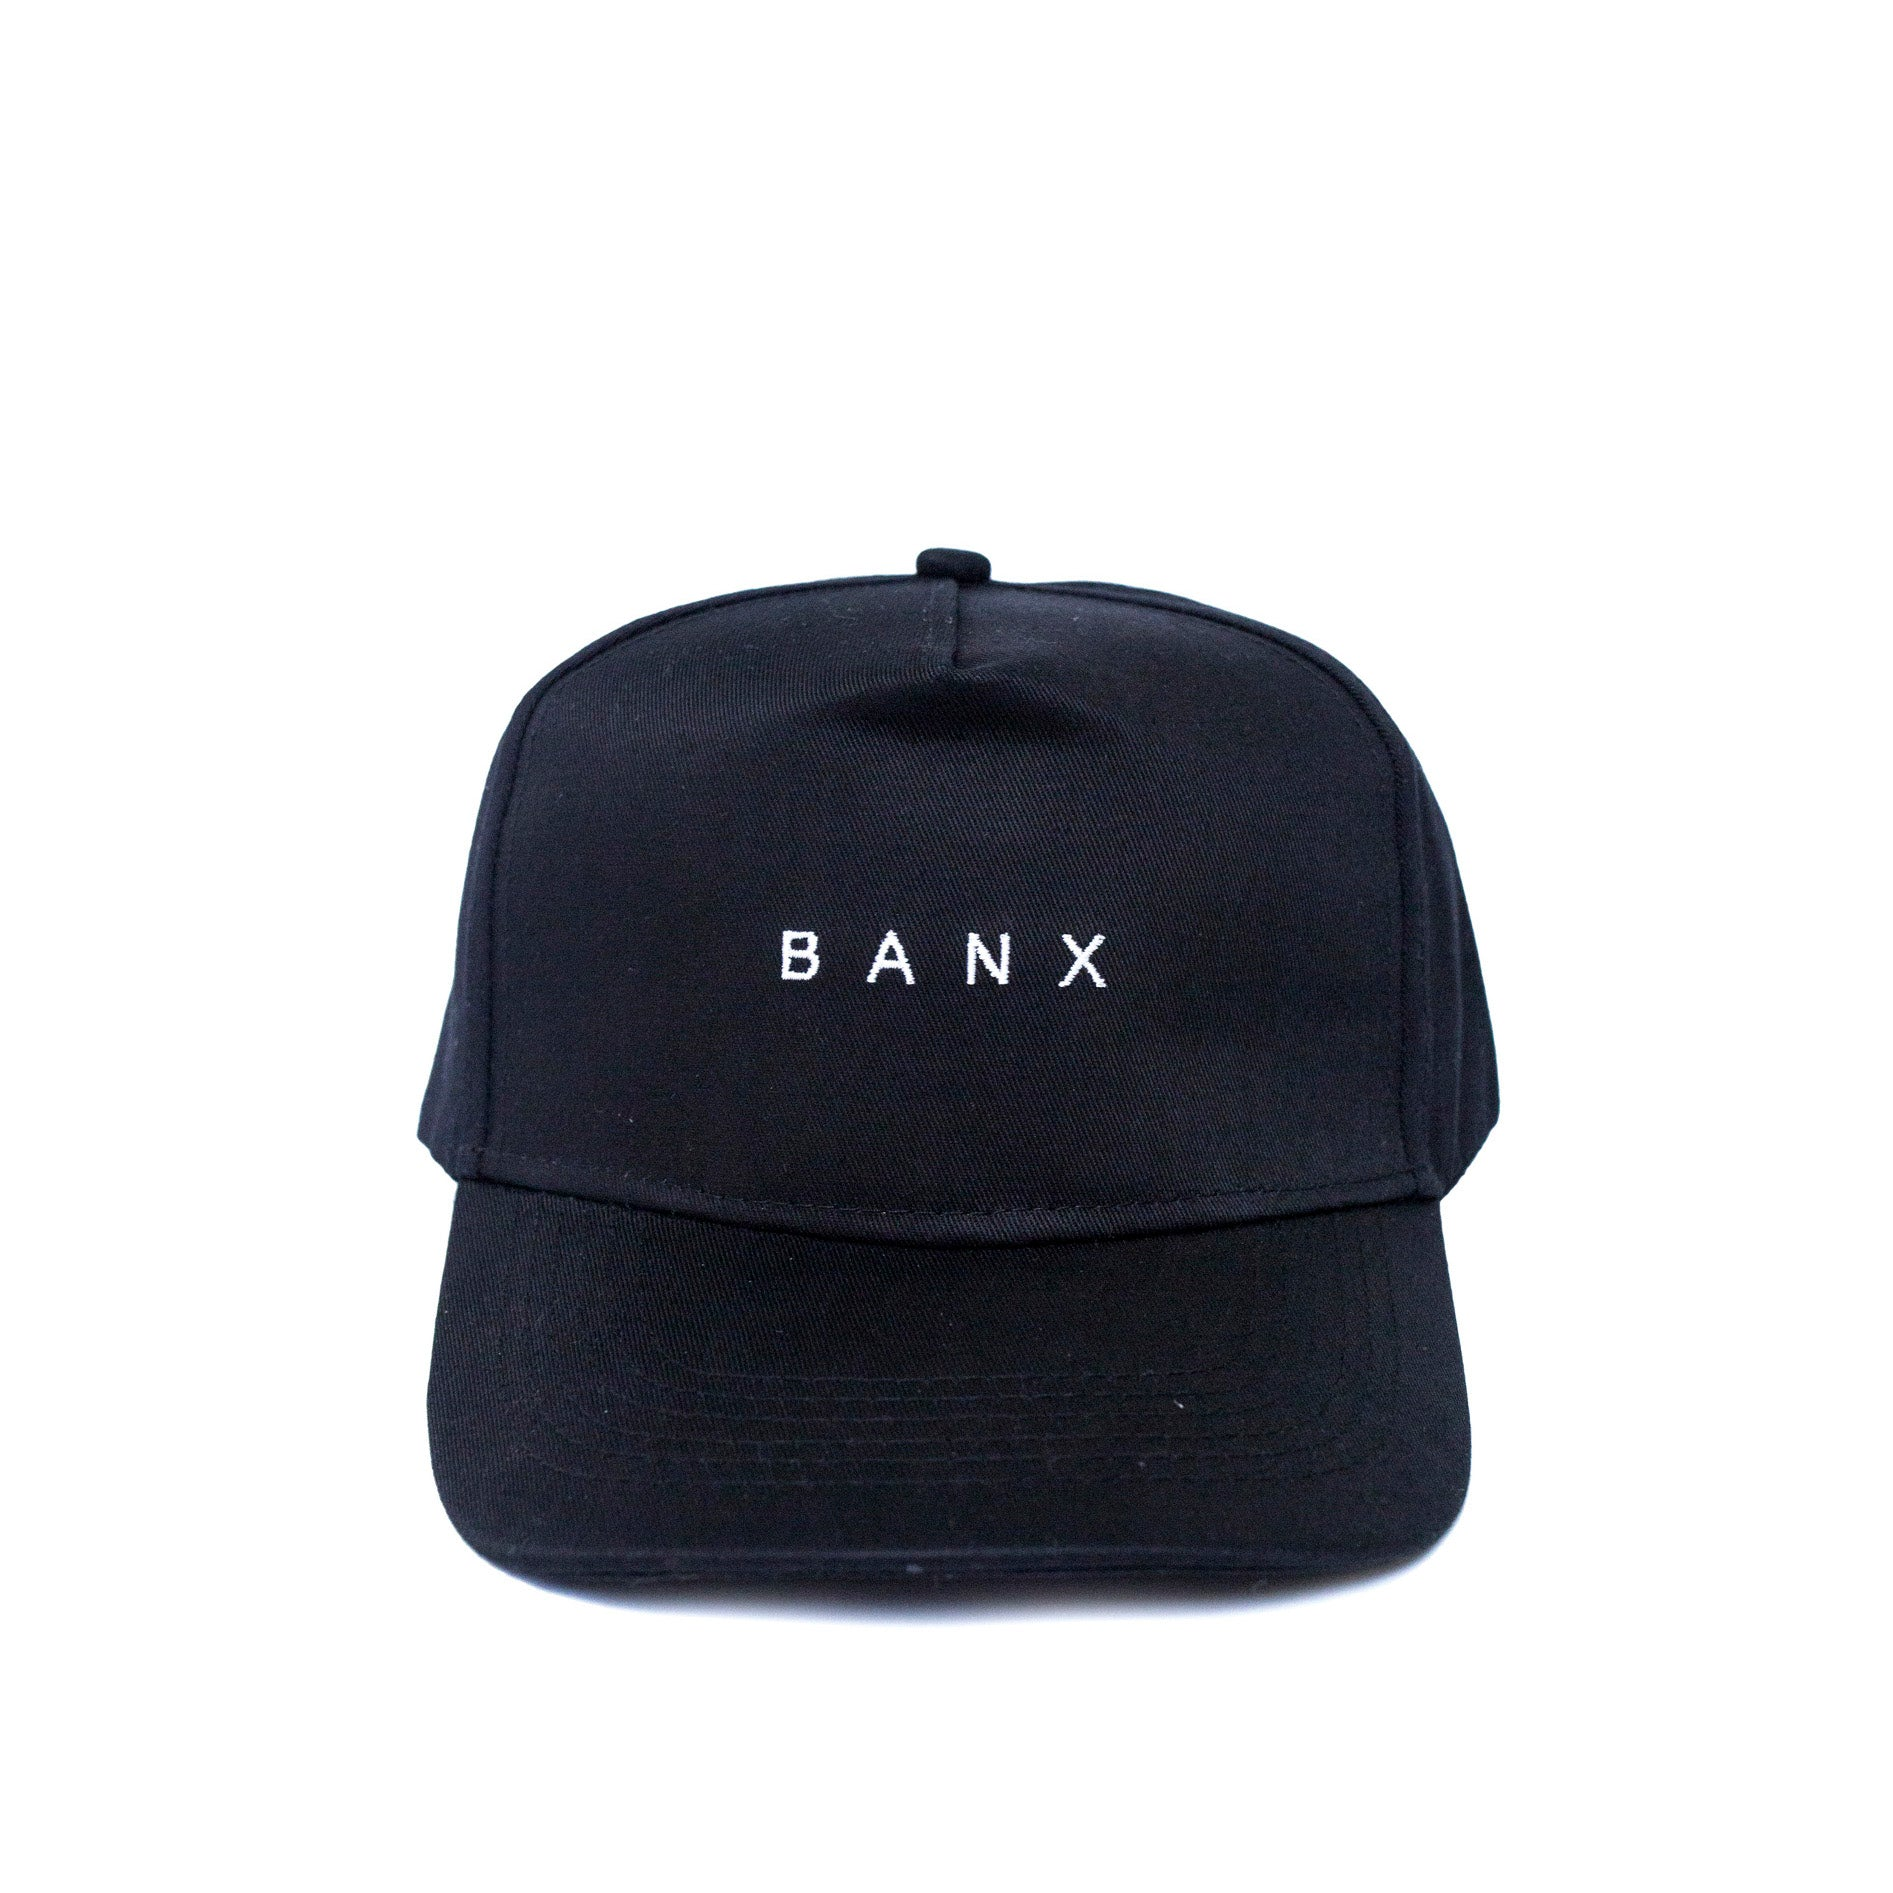 A-FRAME CAP - BLACK (WHITE TEXT)